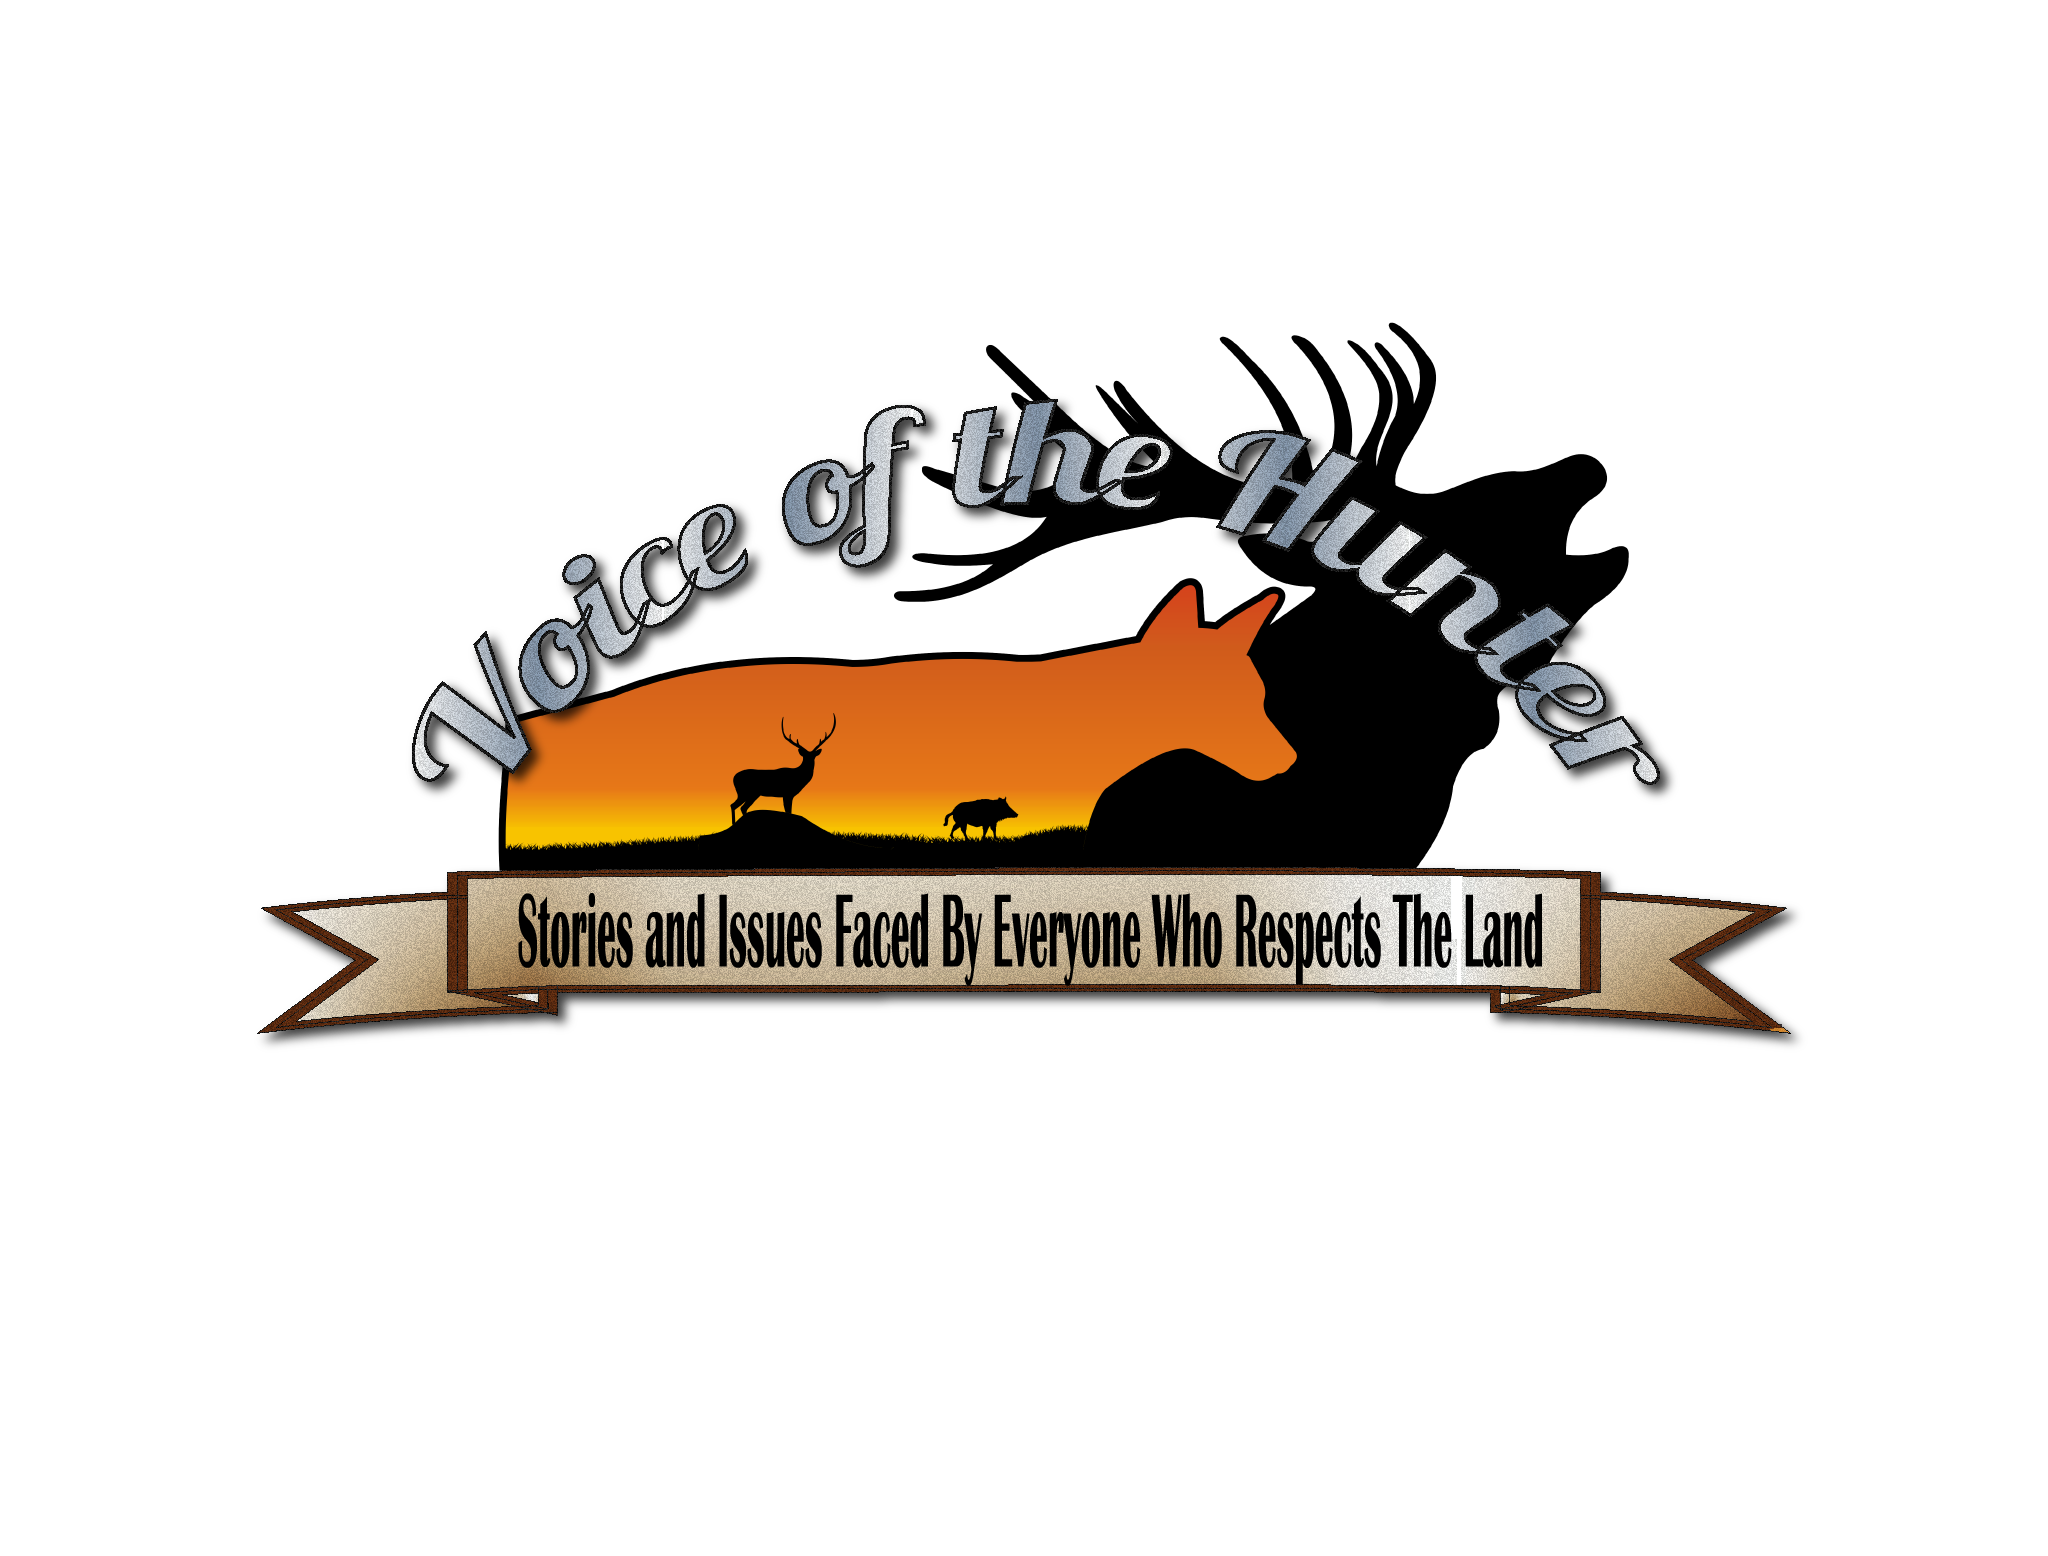 Voice of the hunter AWCA